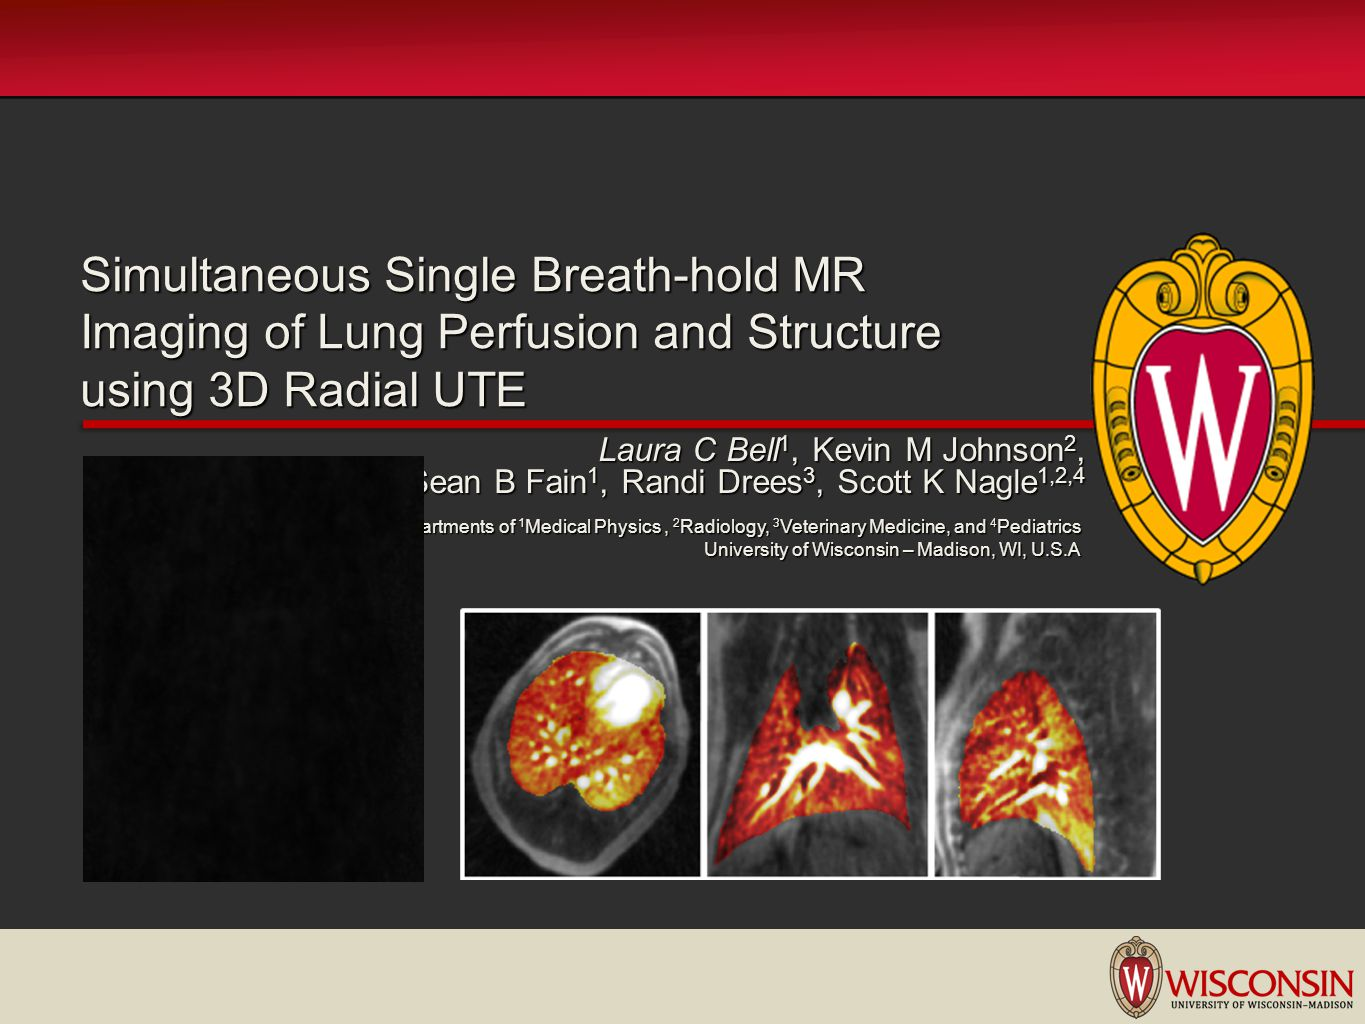 Simultaneous Single Breath-hold MR Imaging of Lung Perfusion and Structure using 3D Radial UTE